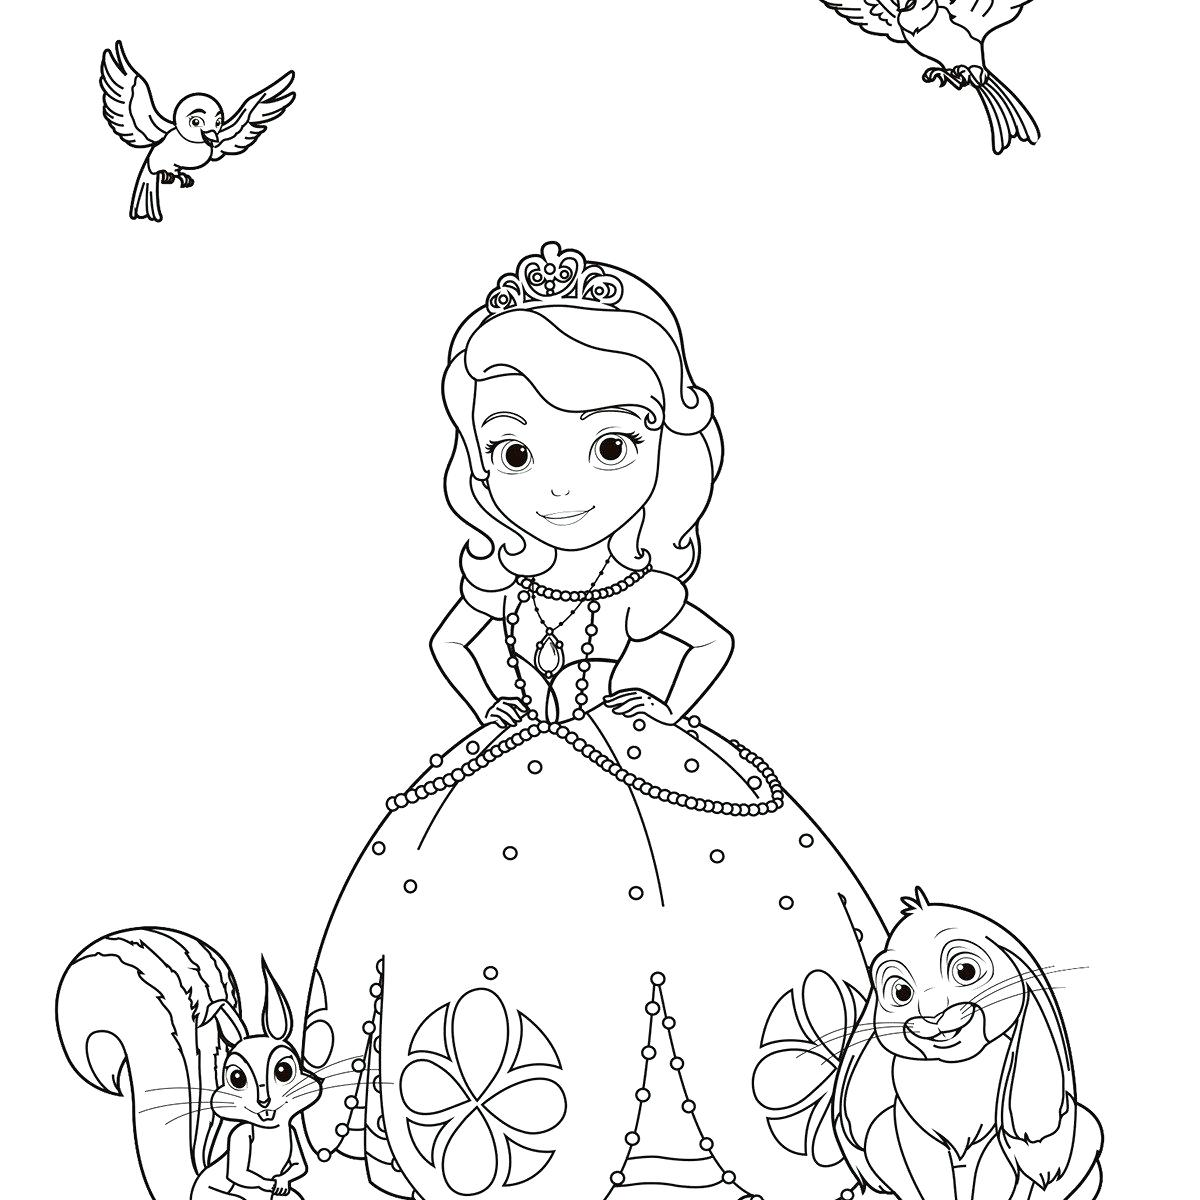 sophia the first coloring pages sofia the first coloring pages fotolipcom rich image sophia the first pages coloring